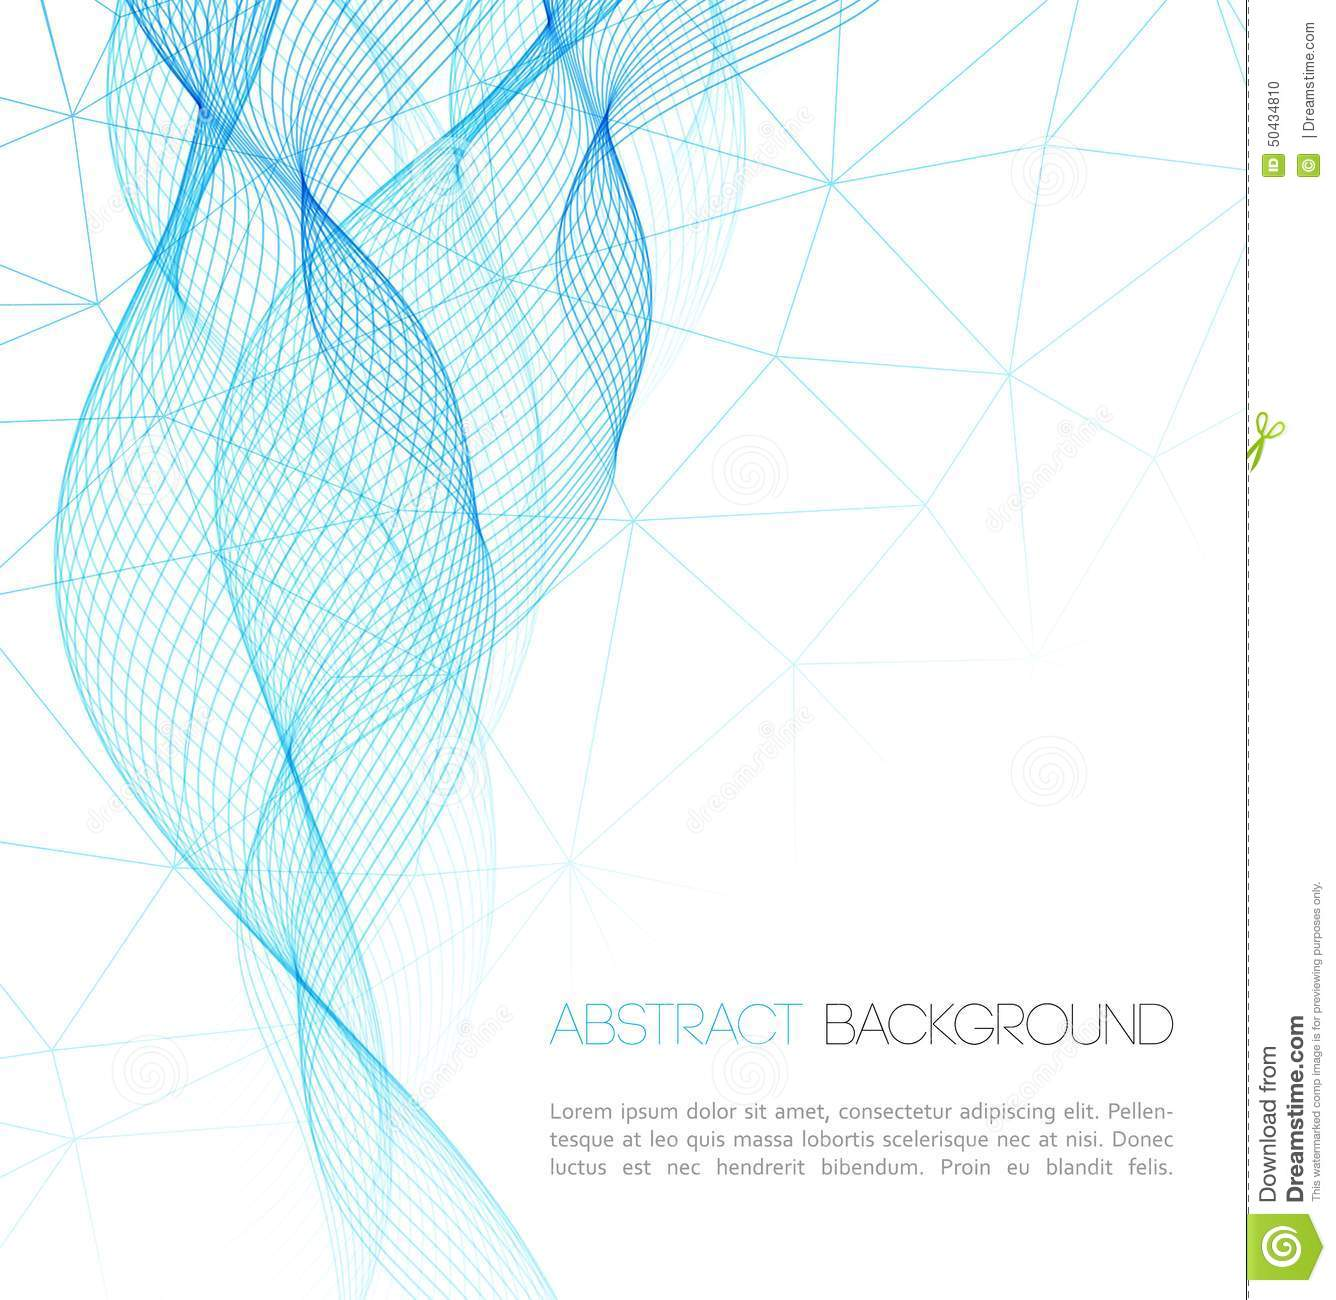 Abstract technology background template design stock for Background for brochure design